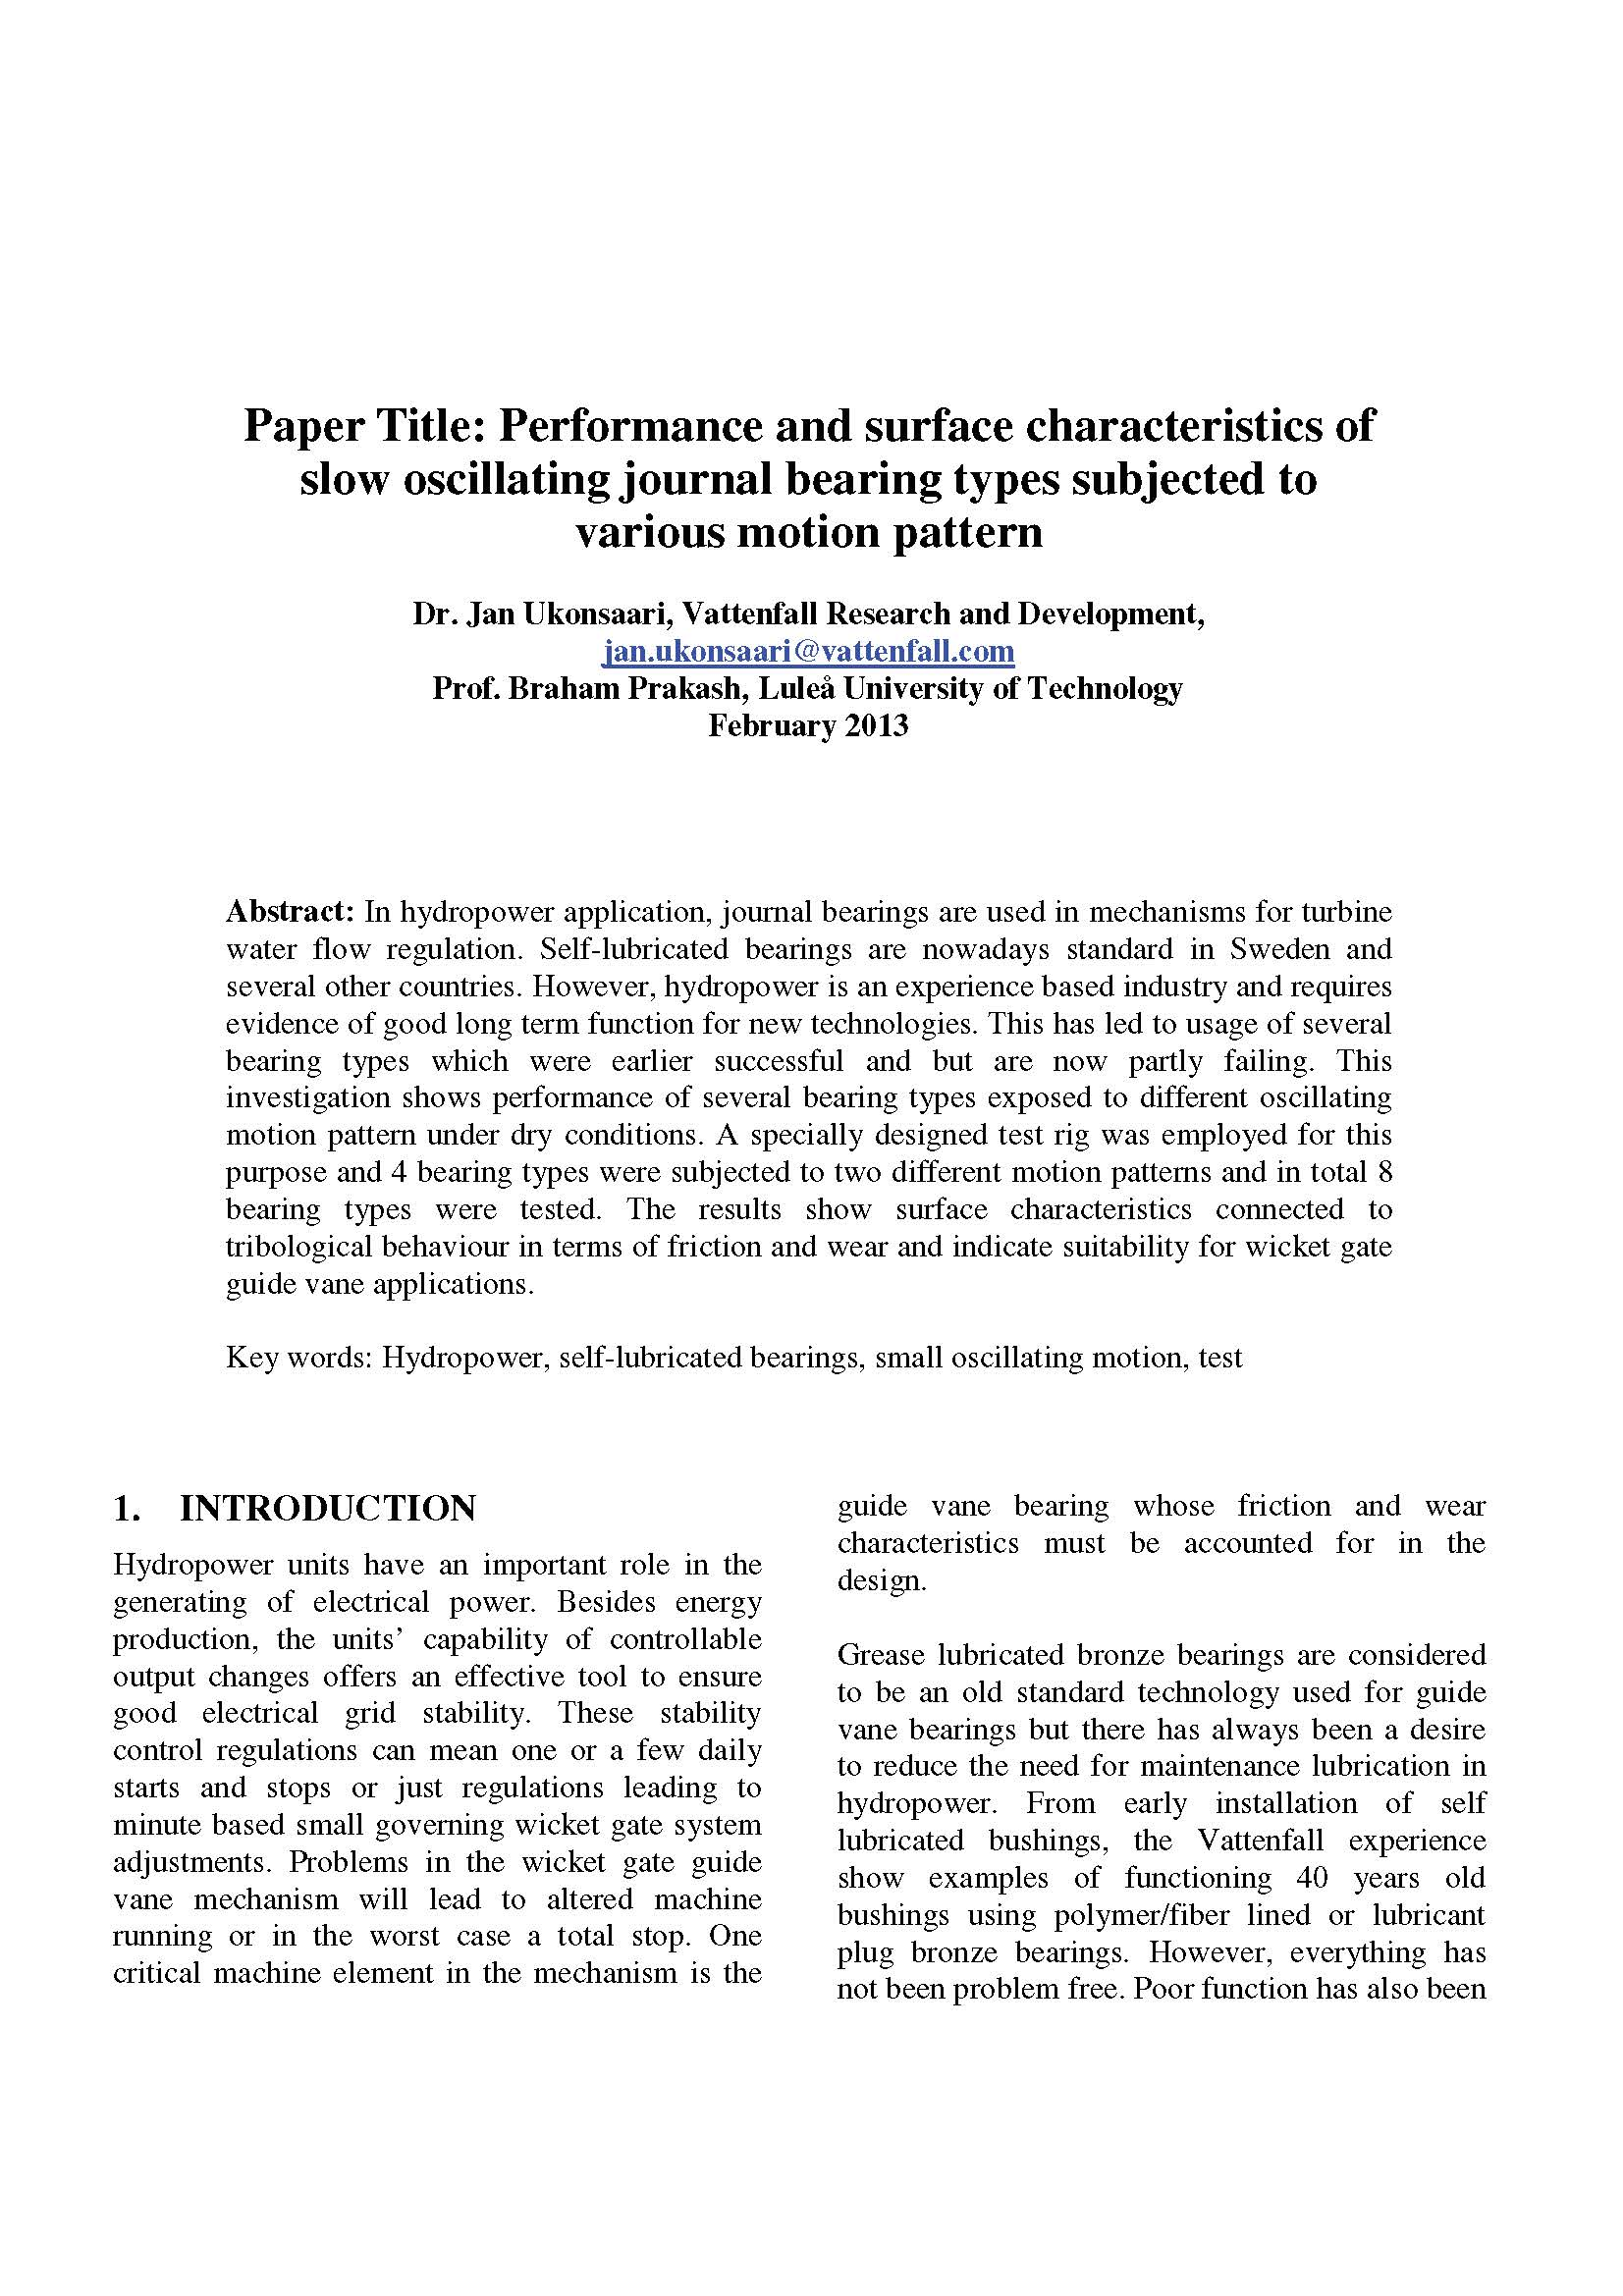 Vattenfall_Lulea University - Performance Characteristics of Slow Oscillating Journal Bearings